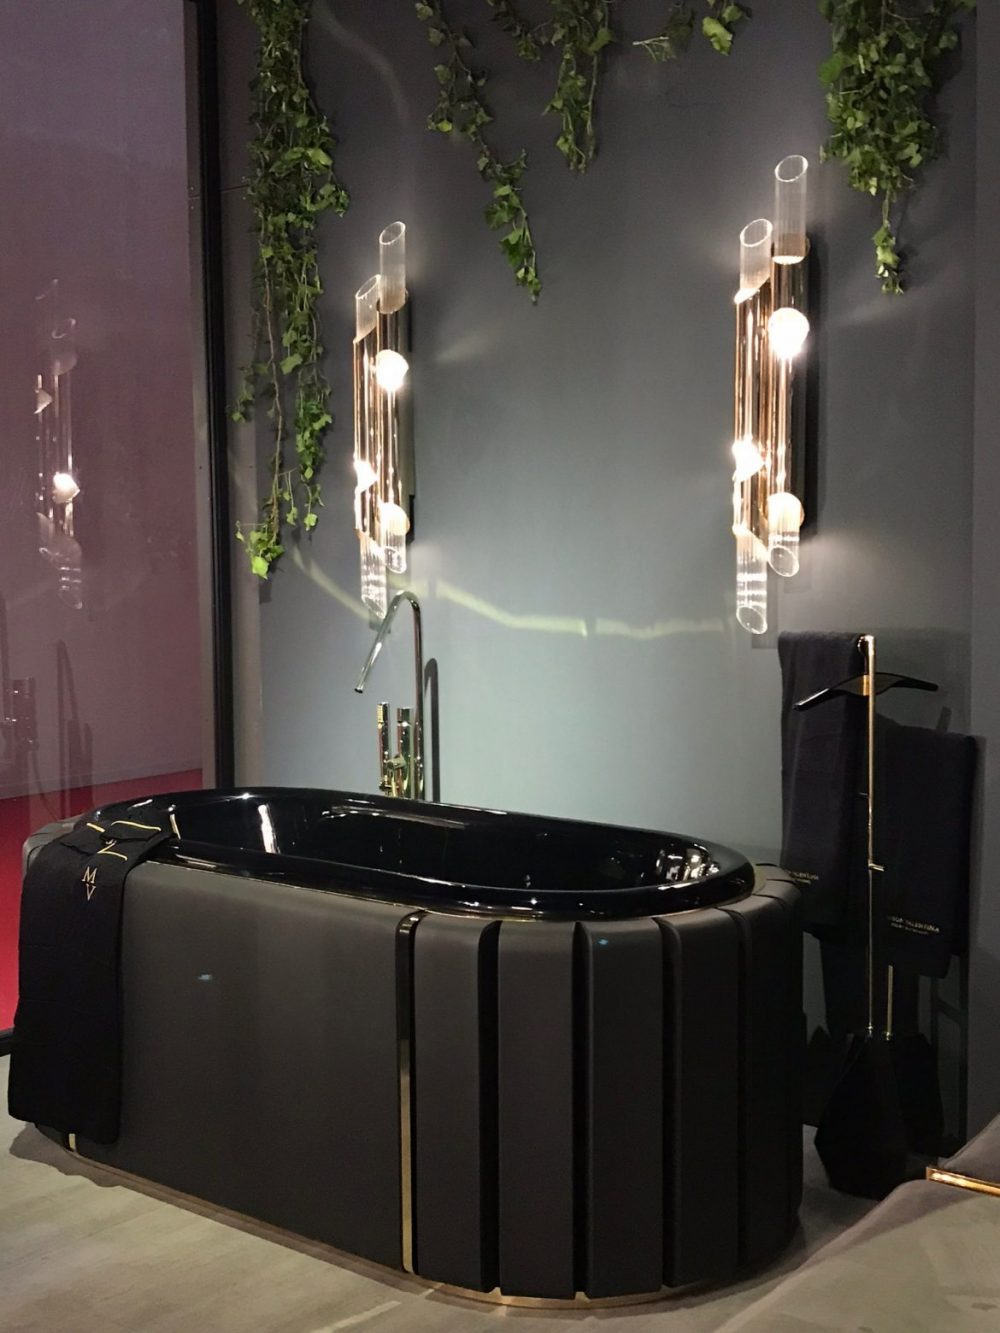 salone del mobile 2019 Salone Del Mobile 2019: The Top Choices Of Day 1 IMG 0255 e1554810965917